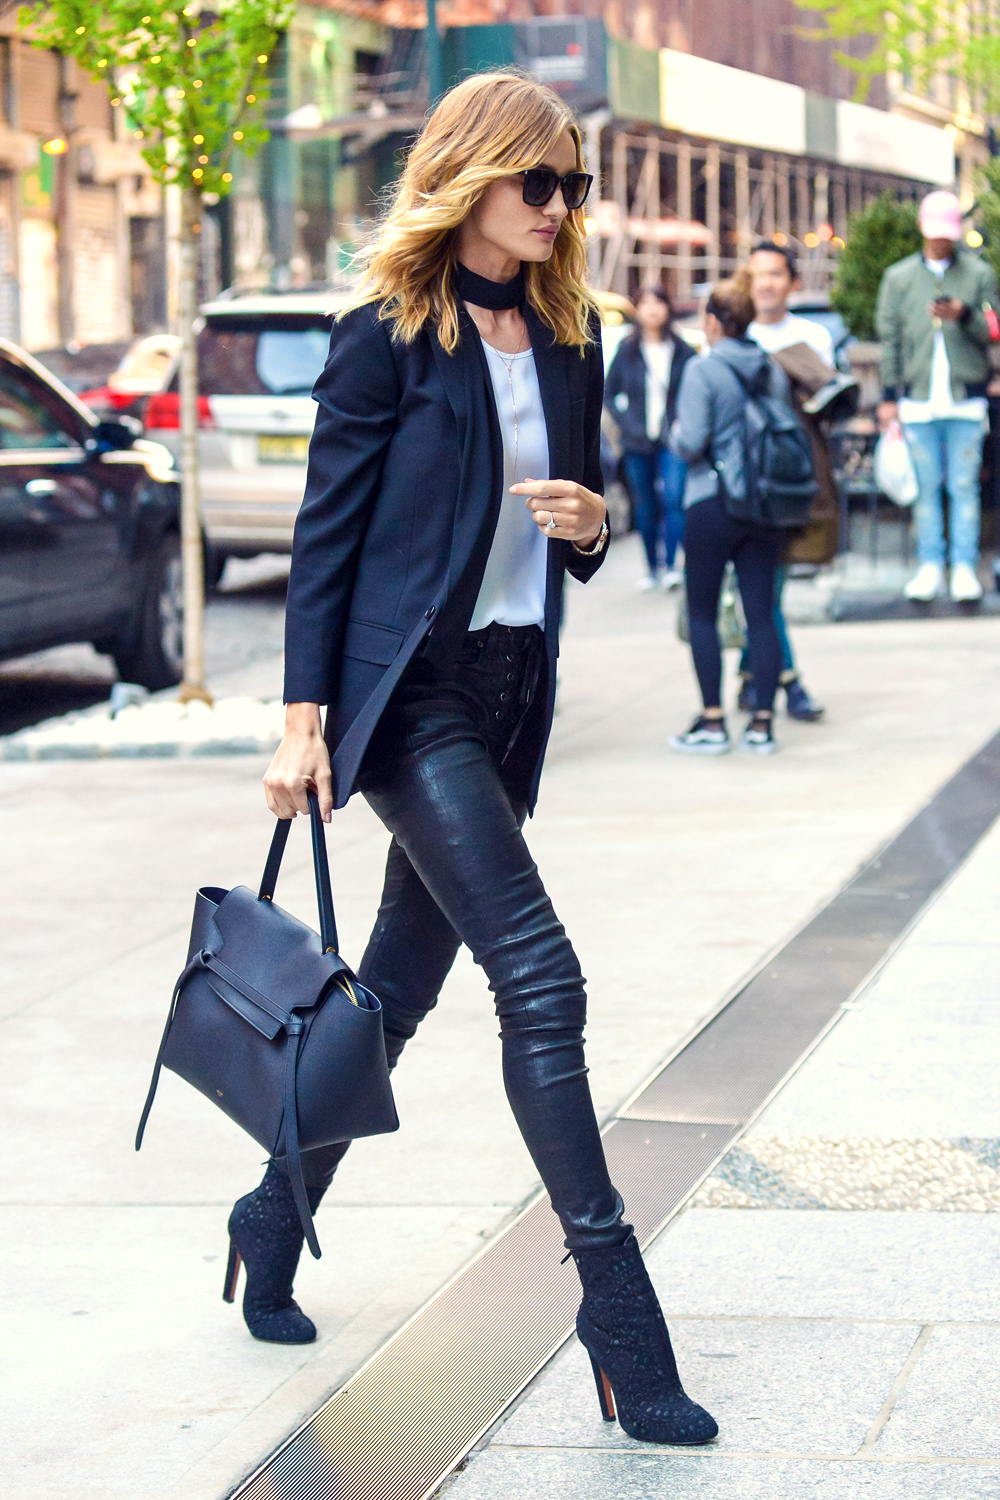 Rosie Huntington-Whiteley out in NYC #leatherpants #leatherskinnypants